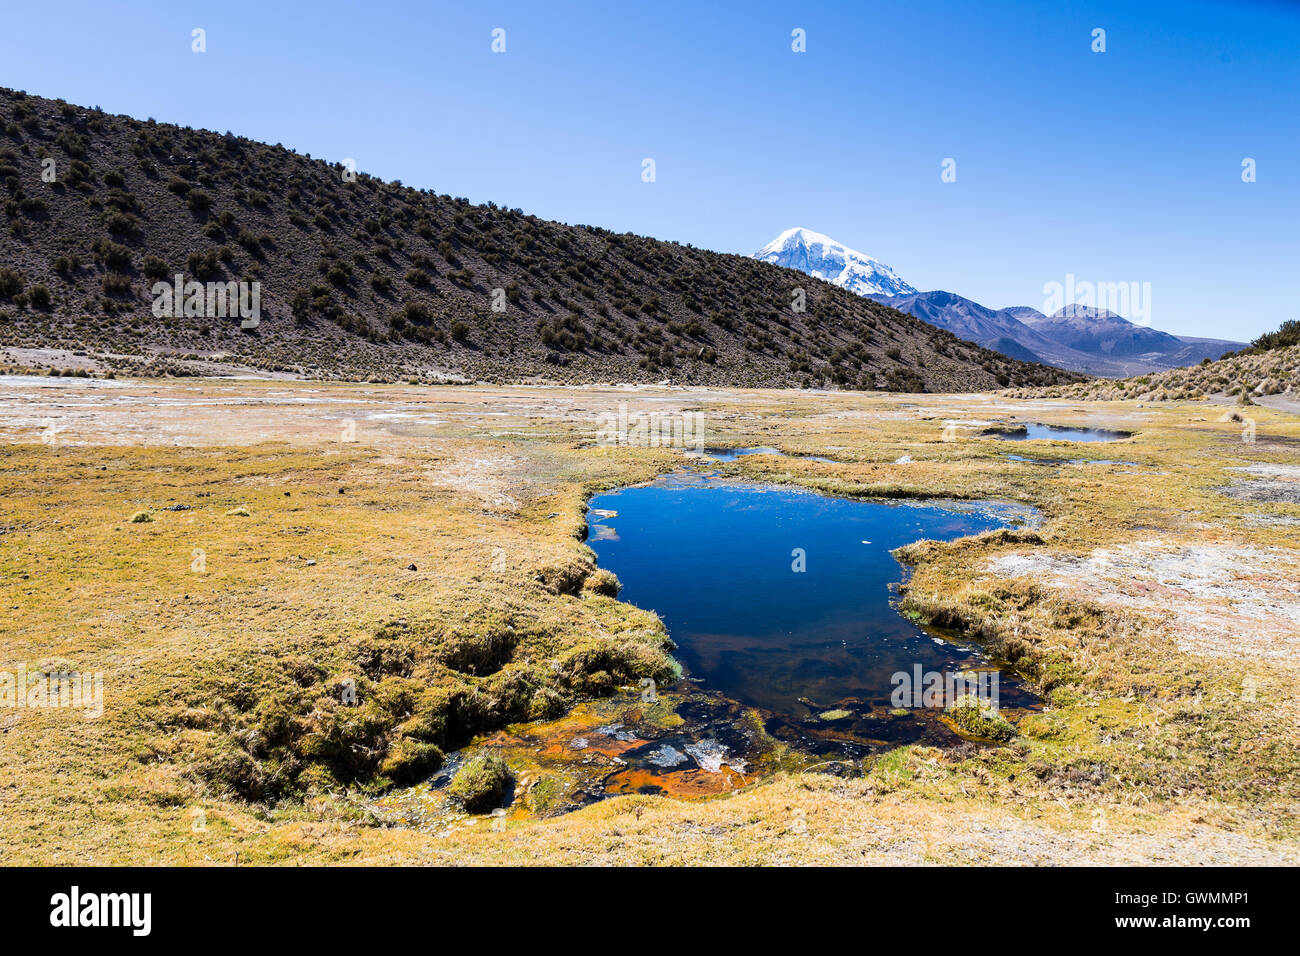 Andean geysers. Junthuma geysers, formed by geothermal activity. Bolivia. The thermal pools allow a healthy and - Stock Image